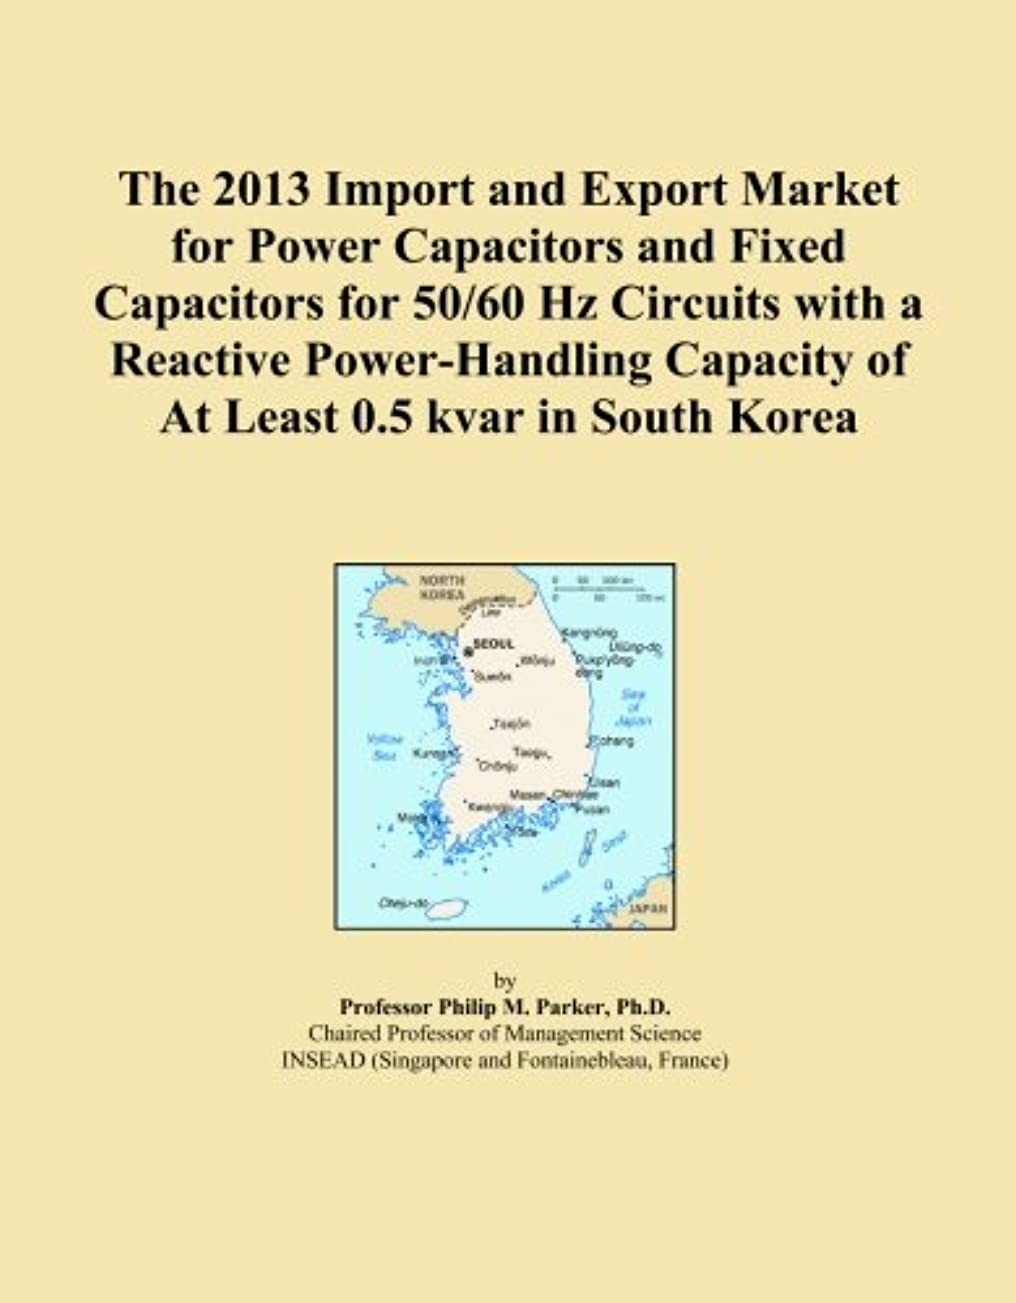 友だちすり団結するThe 2013 Import and Export Market for Power Capacitors and Fixed Capacitors for 50/60 Hz Circuits with a Reactive Power-Handling Capacity of At Least 0.5 kvar in South Korea